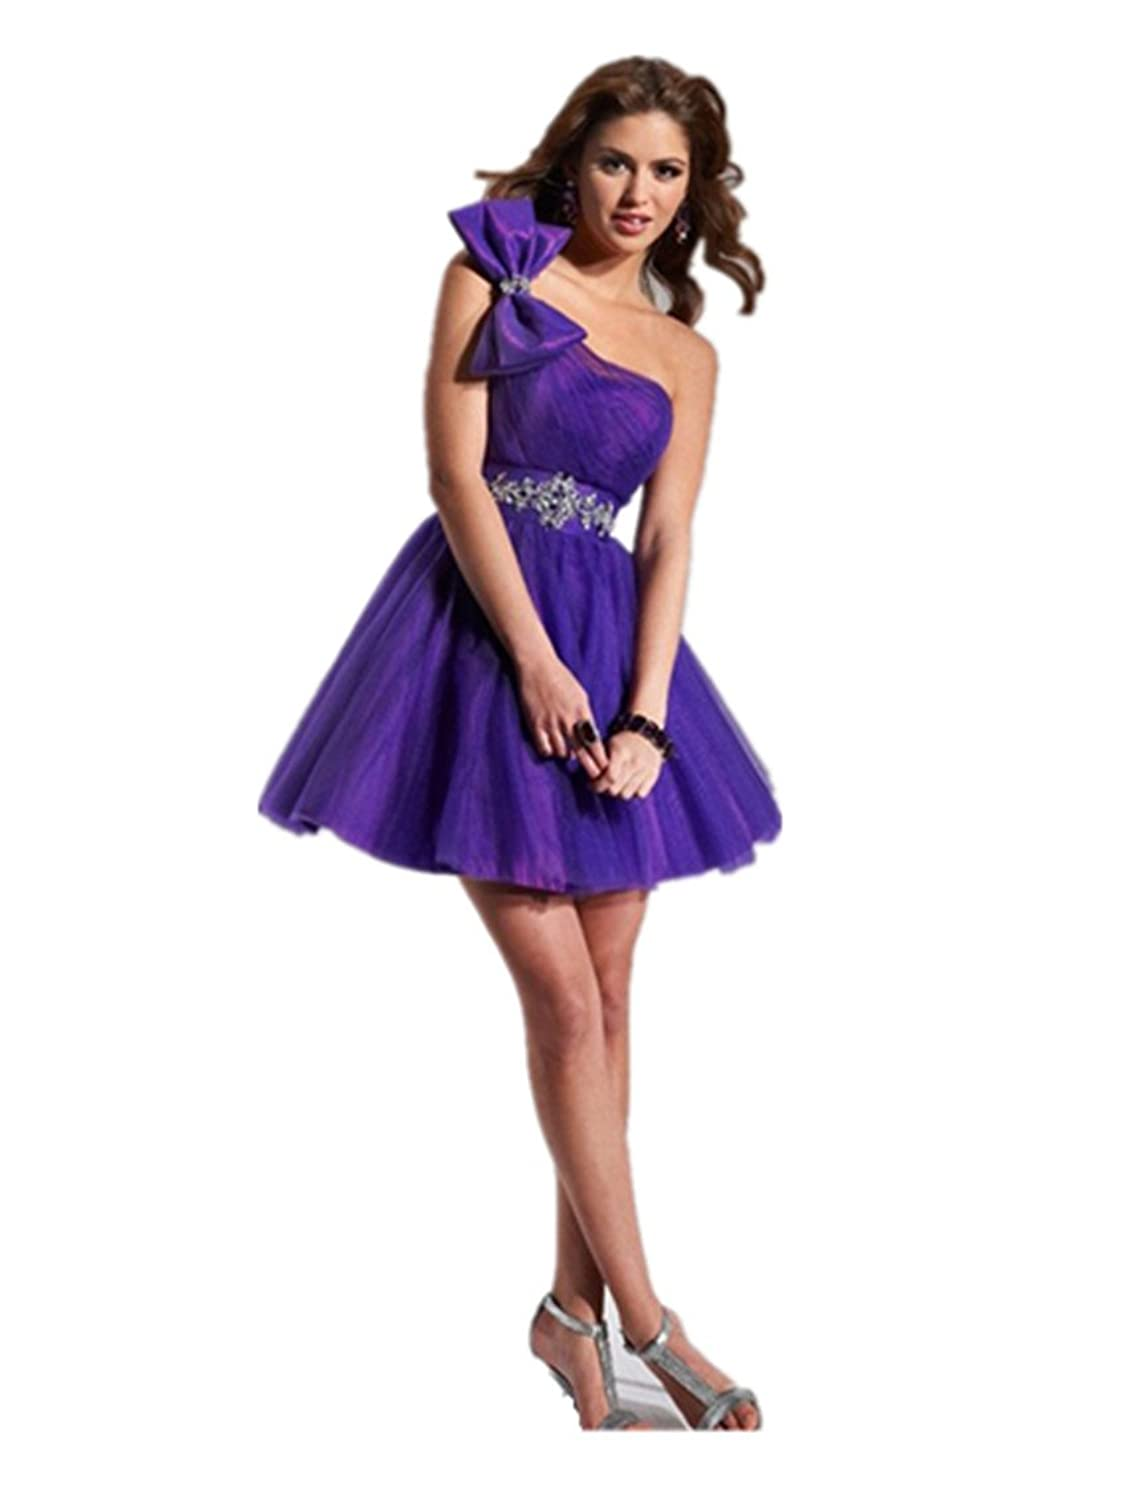 dressvip Purple Bowknet One Shoulder Backless Sleeveless Above Knee Cocktail Dress